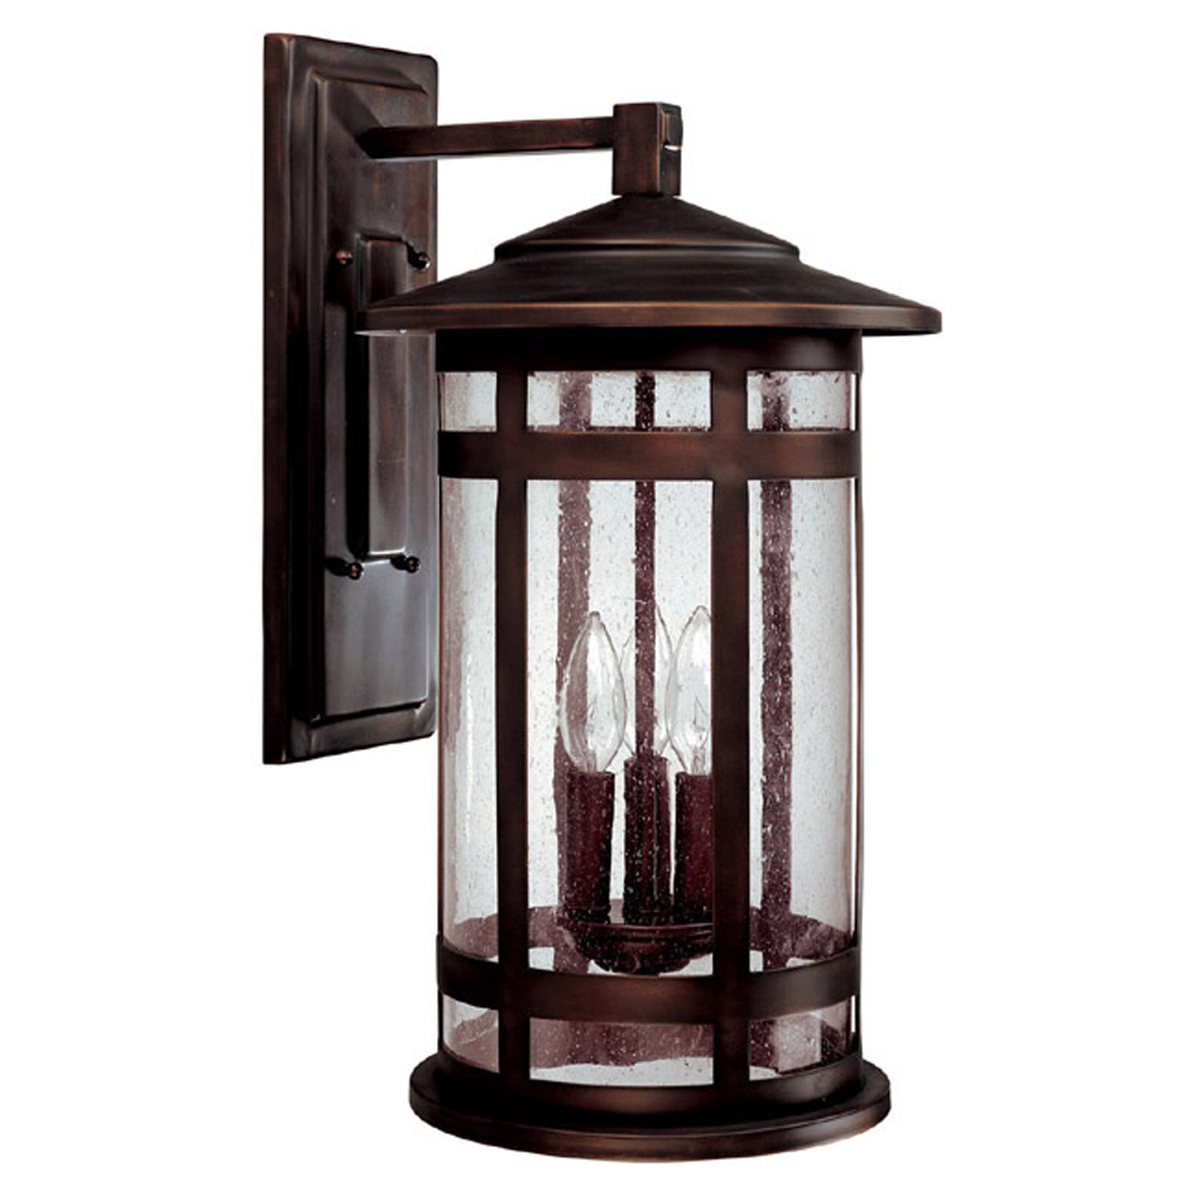 Capital Lighting (9953) Mission Hills 3 Light Outdoor Wall Fixture